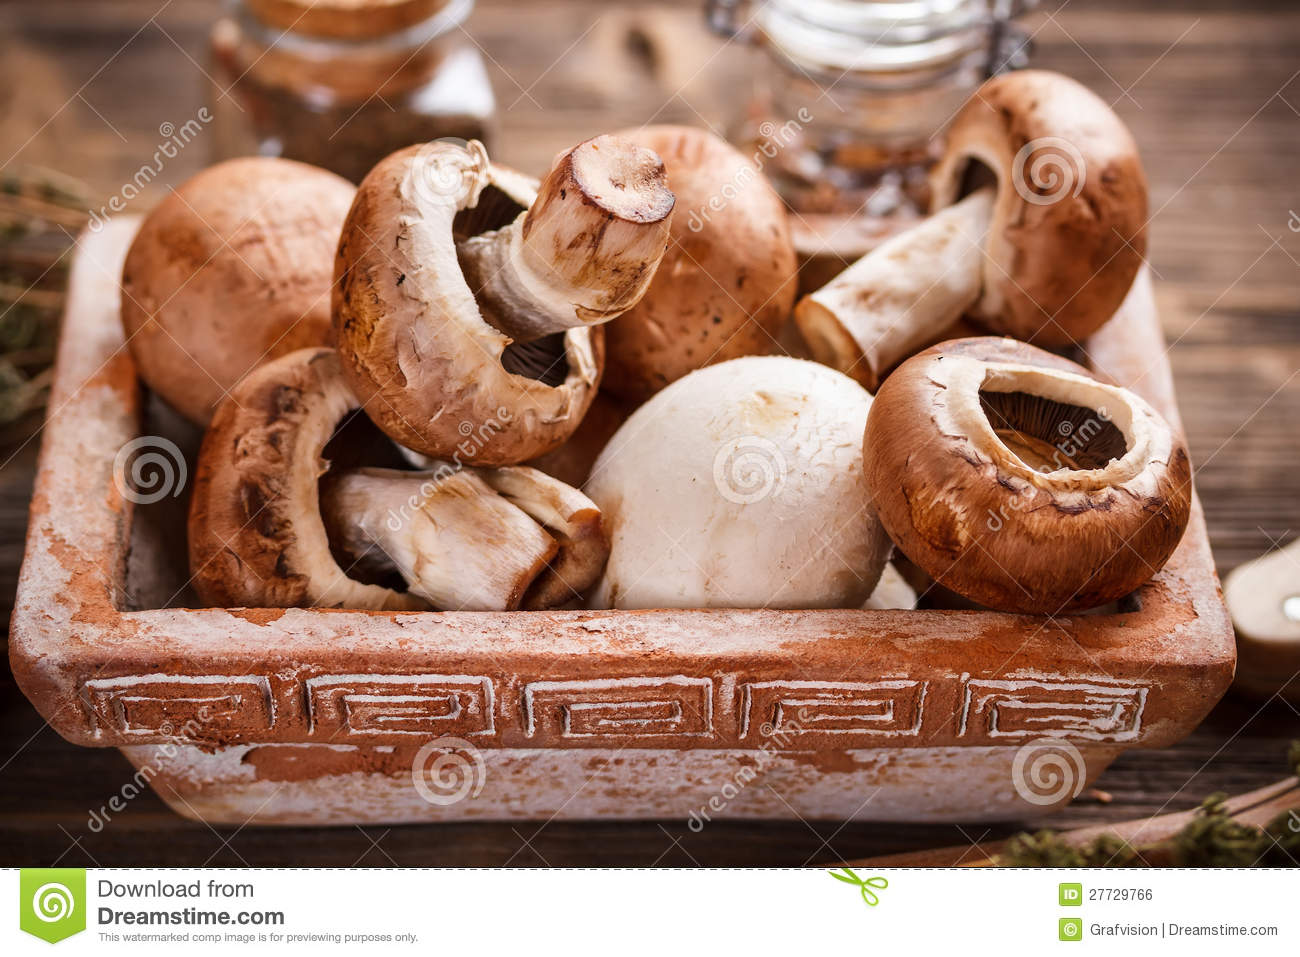 Brown-Champignons